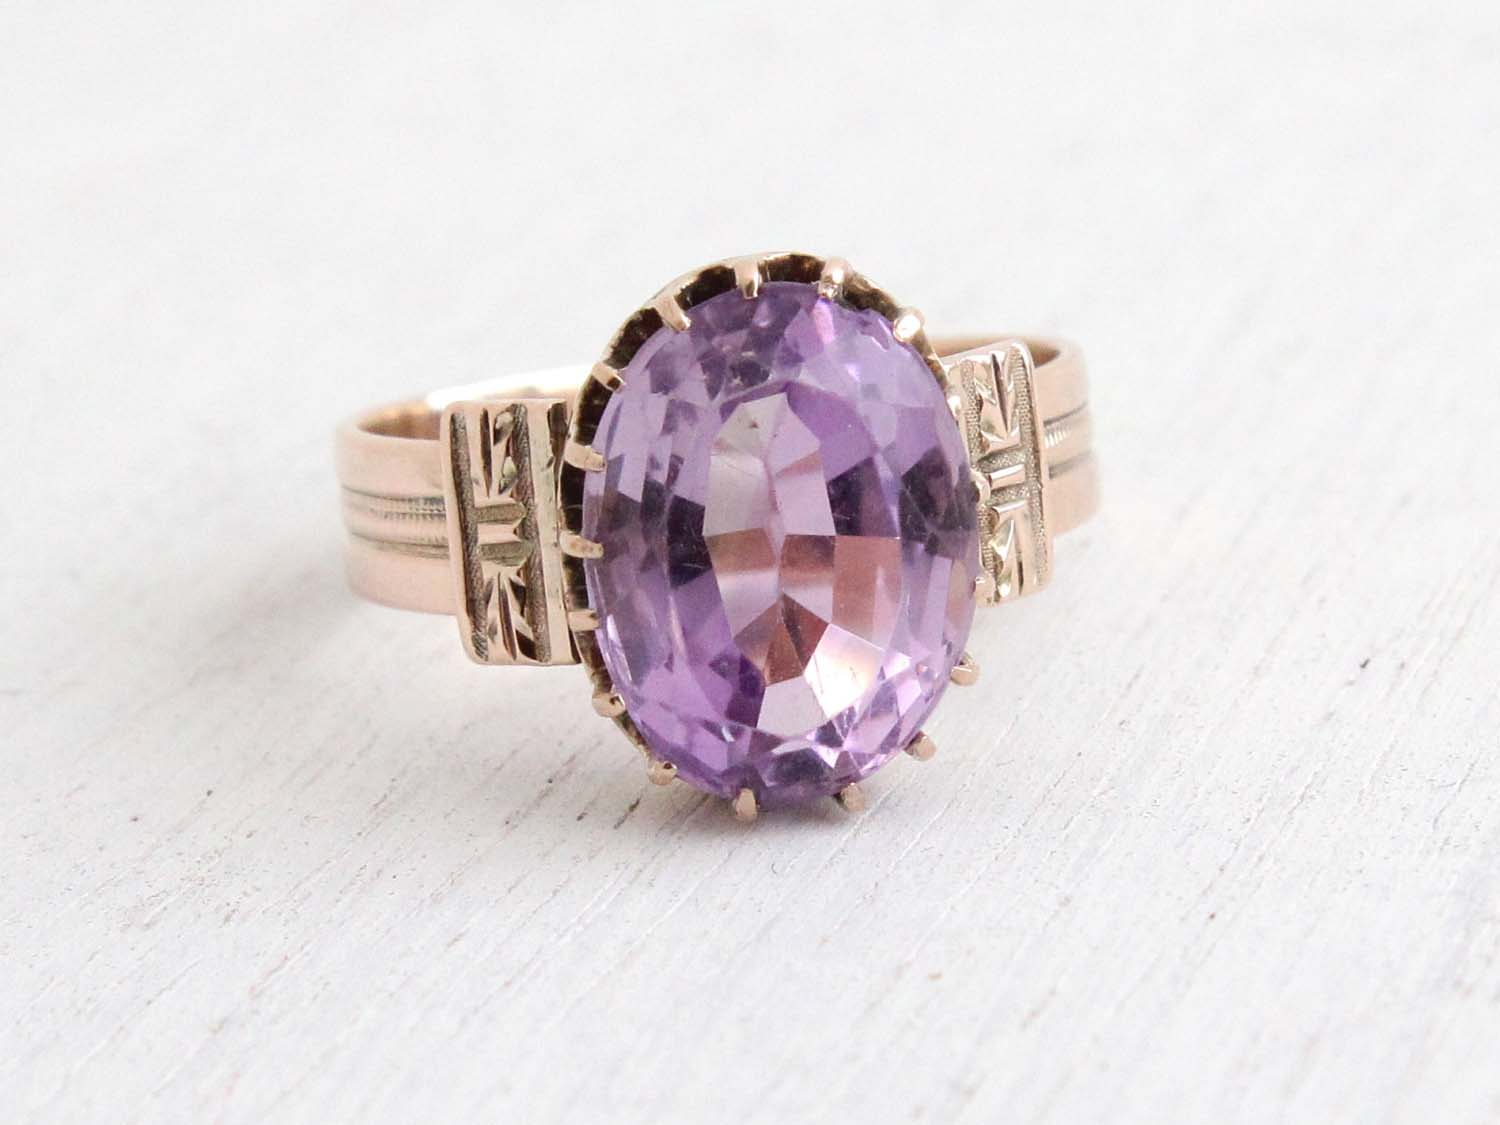 Antique Victorian 10k Rose Gold Rose de France Amethyst Ring